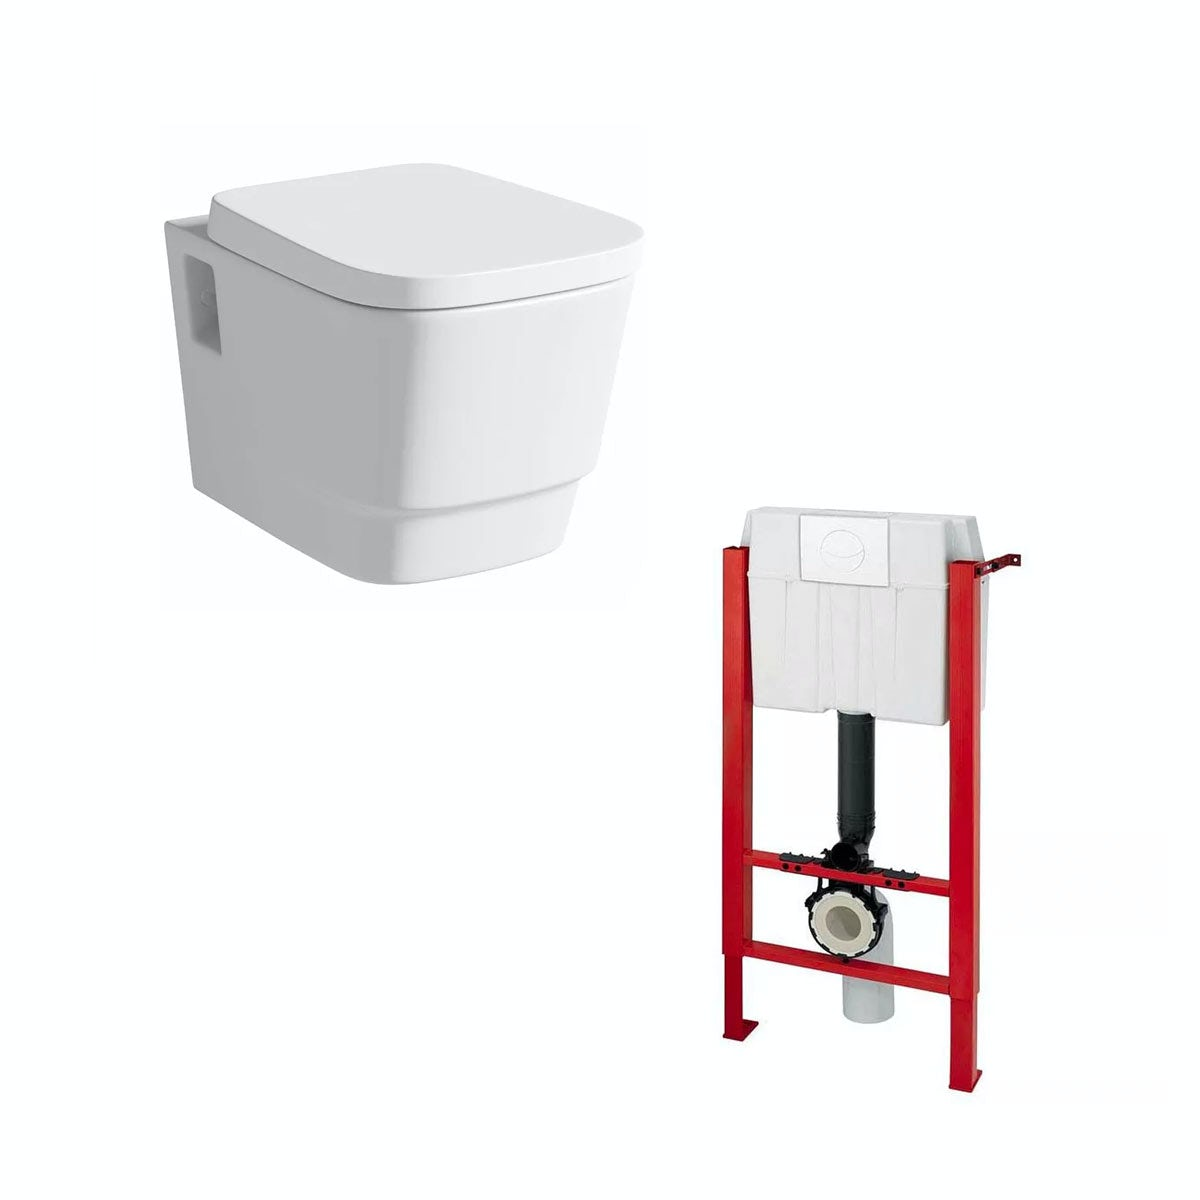 Princeton Wall Hung Toilet and Wall Mounting Frame